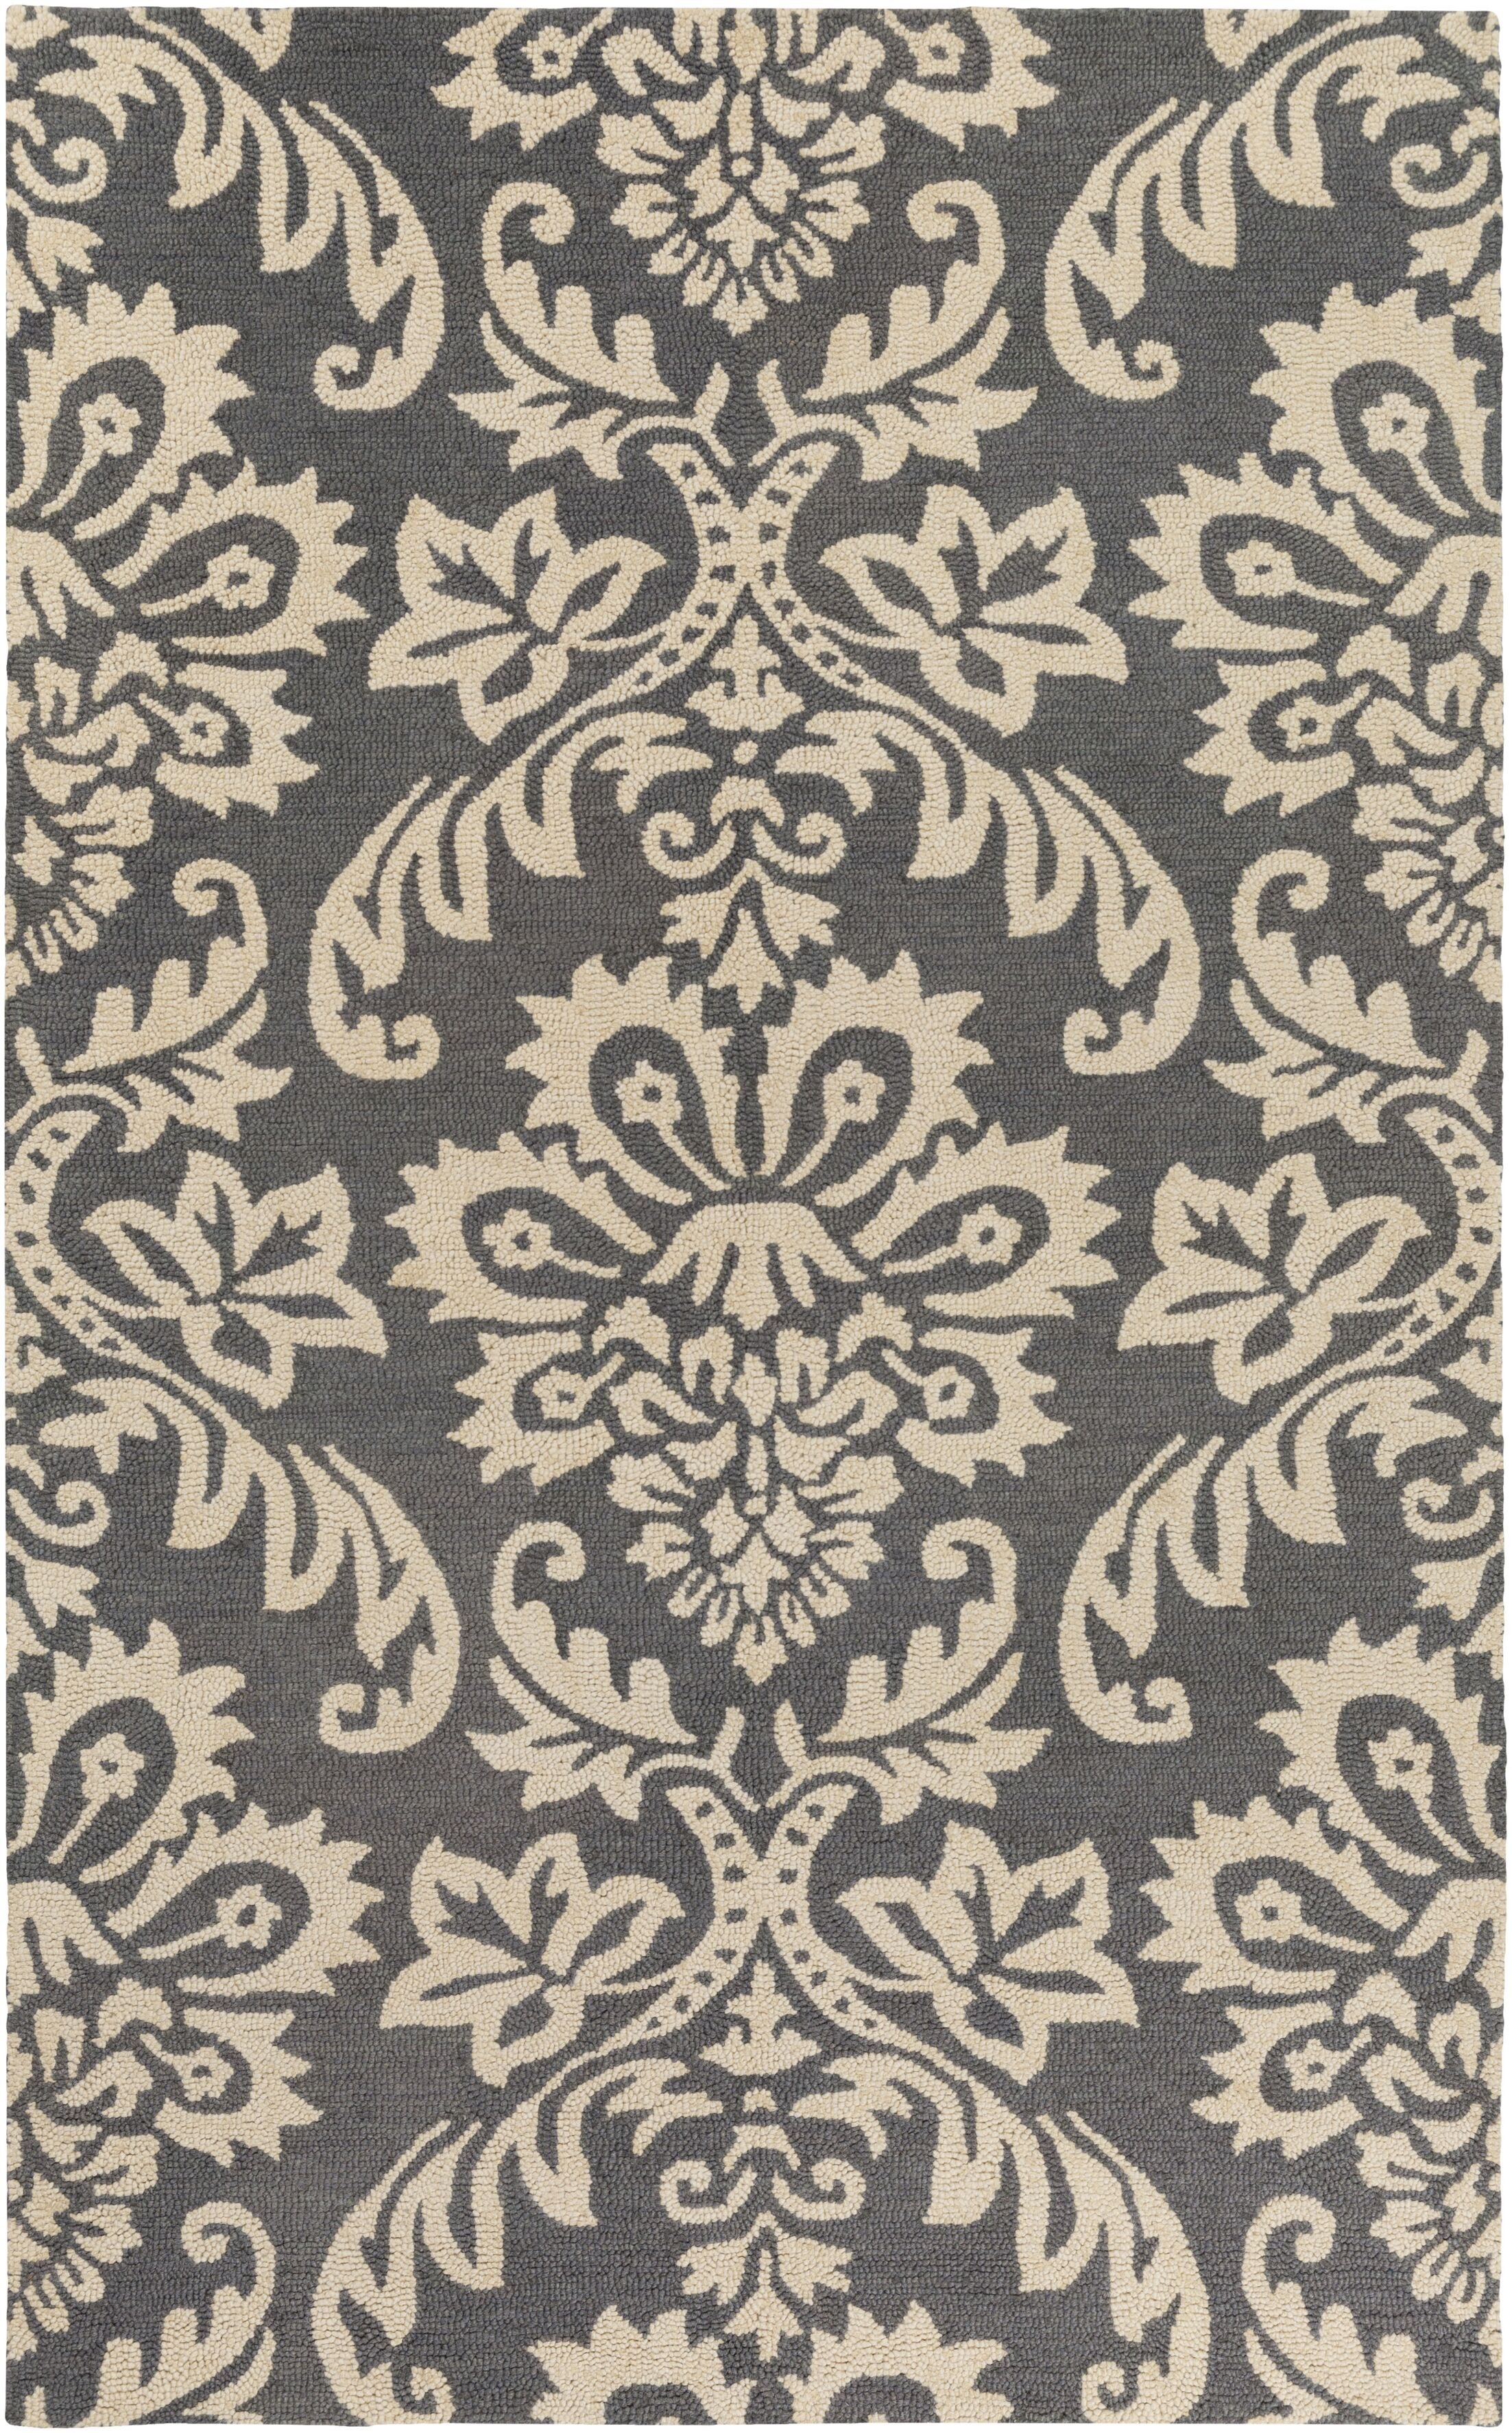 Kimberlin Hand-Tufted Dark Gray/Off-White Area Rug Rug Size: Rectangle 9' x 13'